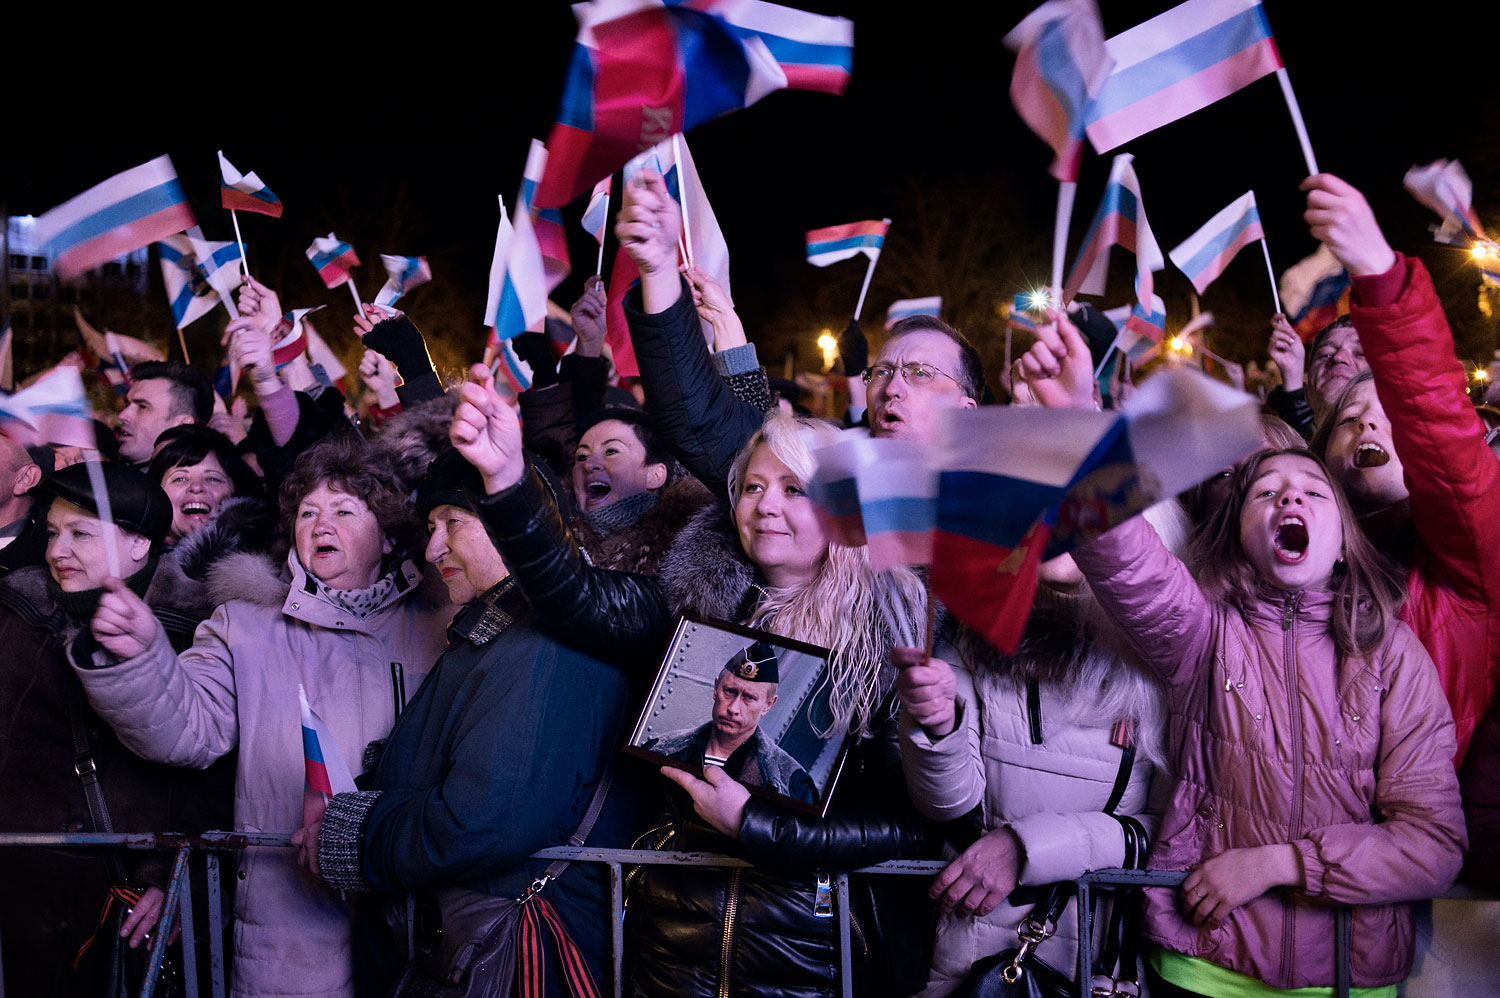 A jubilant crowd waits for the results of the referendum in the Crimean city of Sevastopol on March 16, 2014